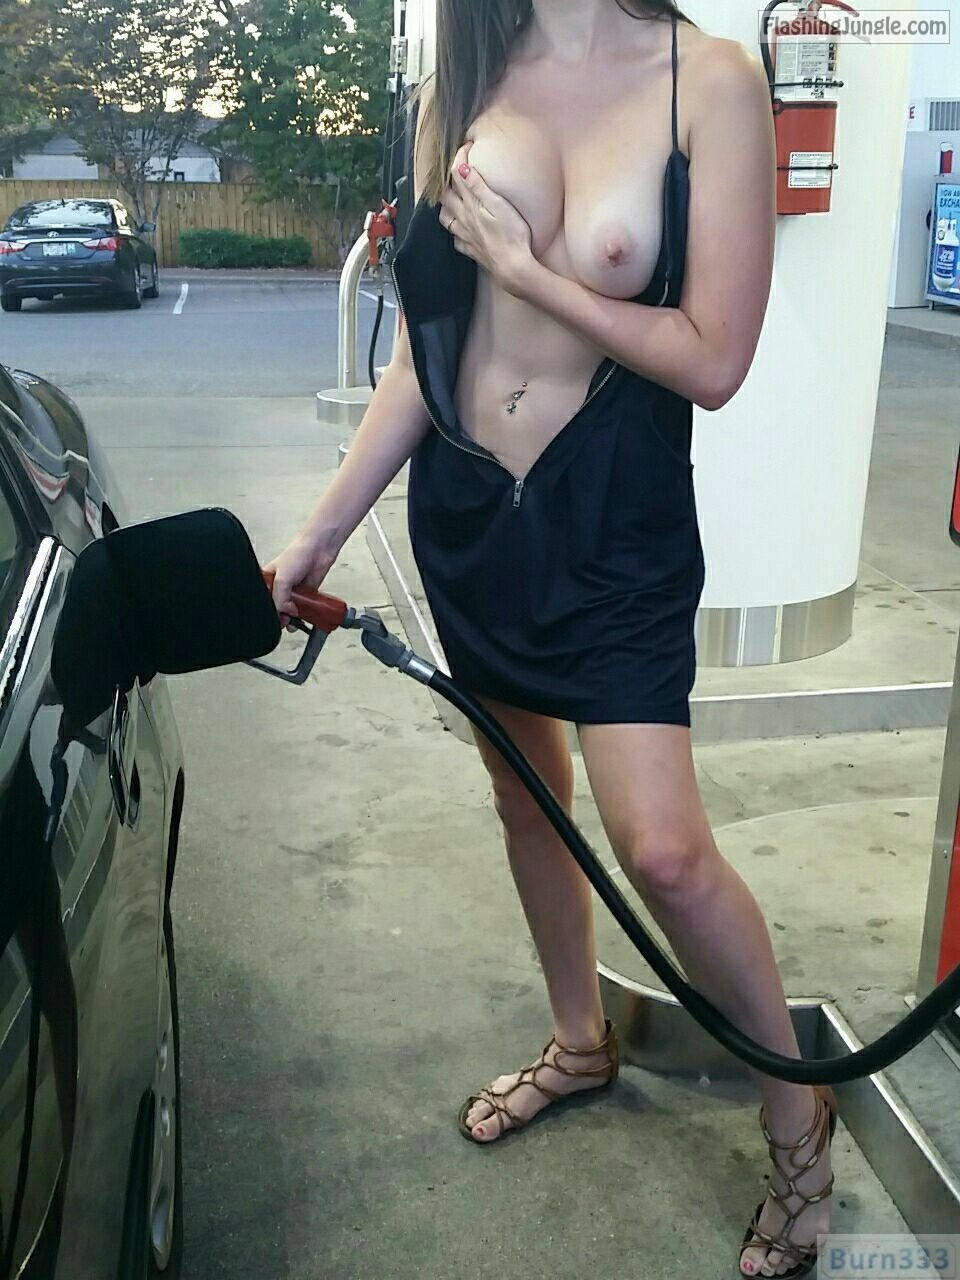 Filling tank and flashing big boobs on gas station public flashing